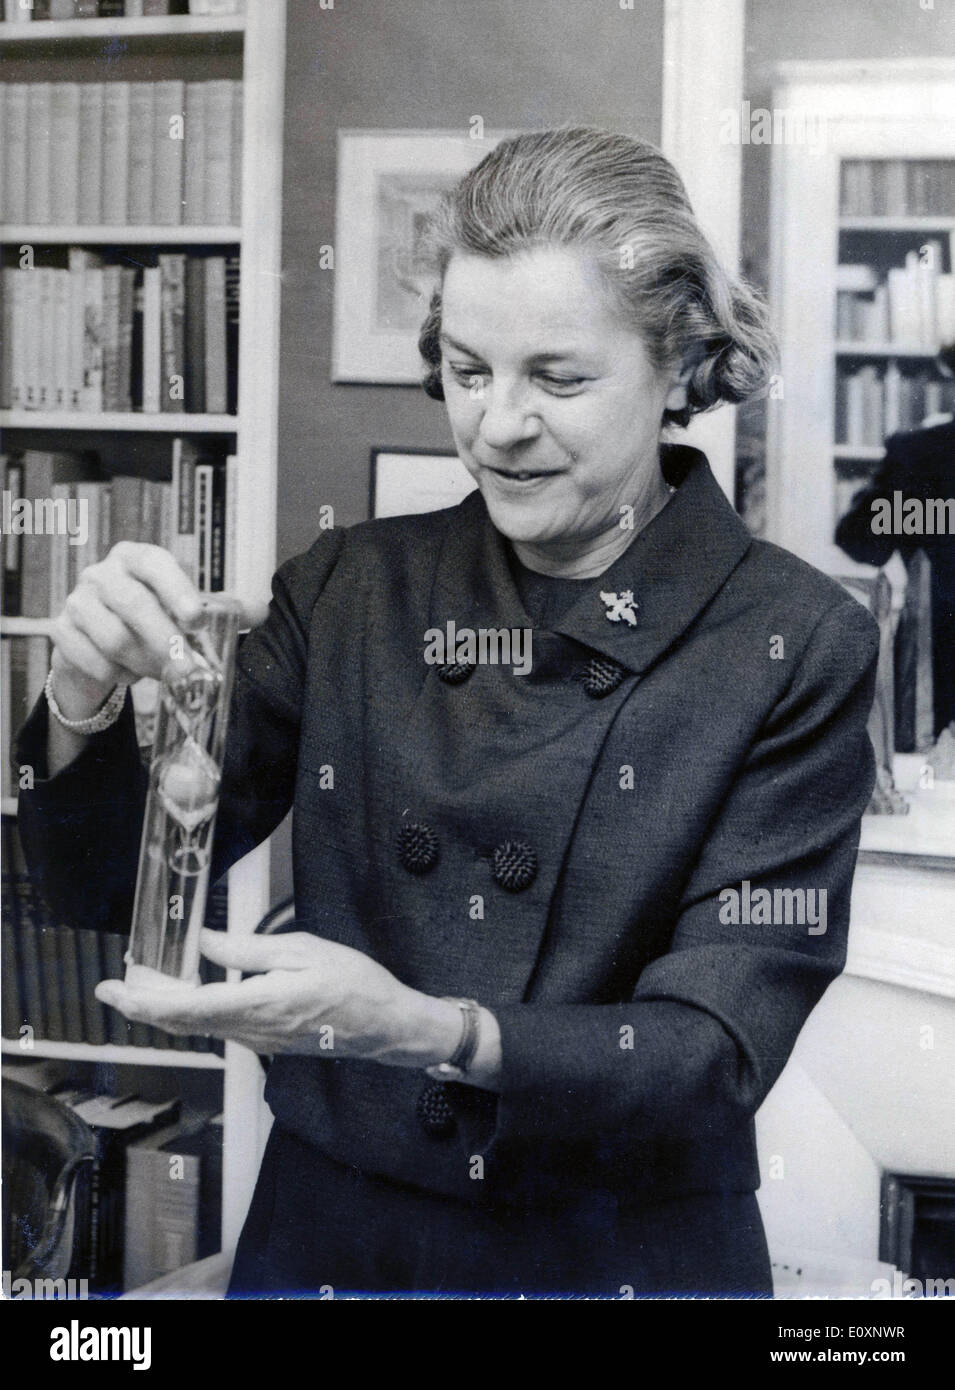 June 21, 1967 - Paris, France - Writer, Novelist MARY MCCARTHY in her office in Paris. - Stock Image